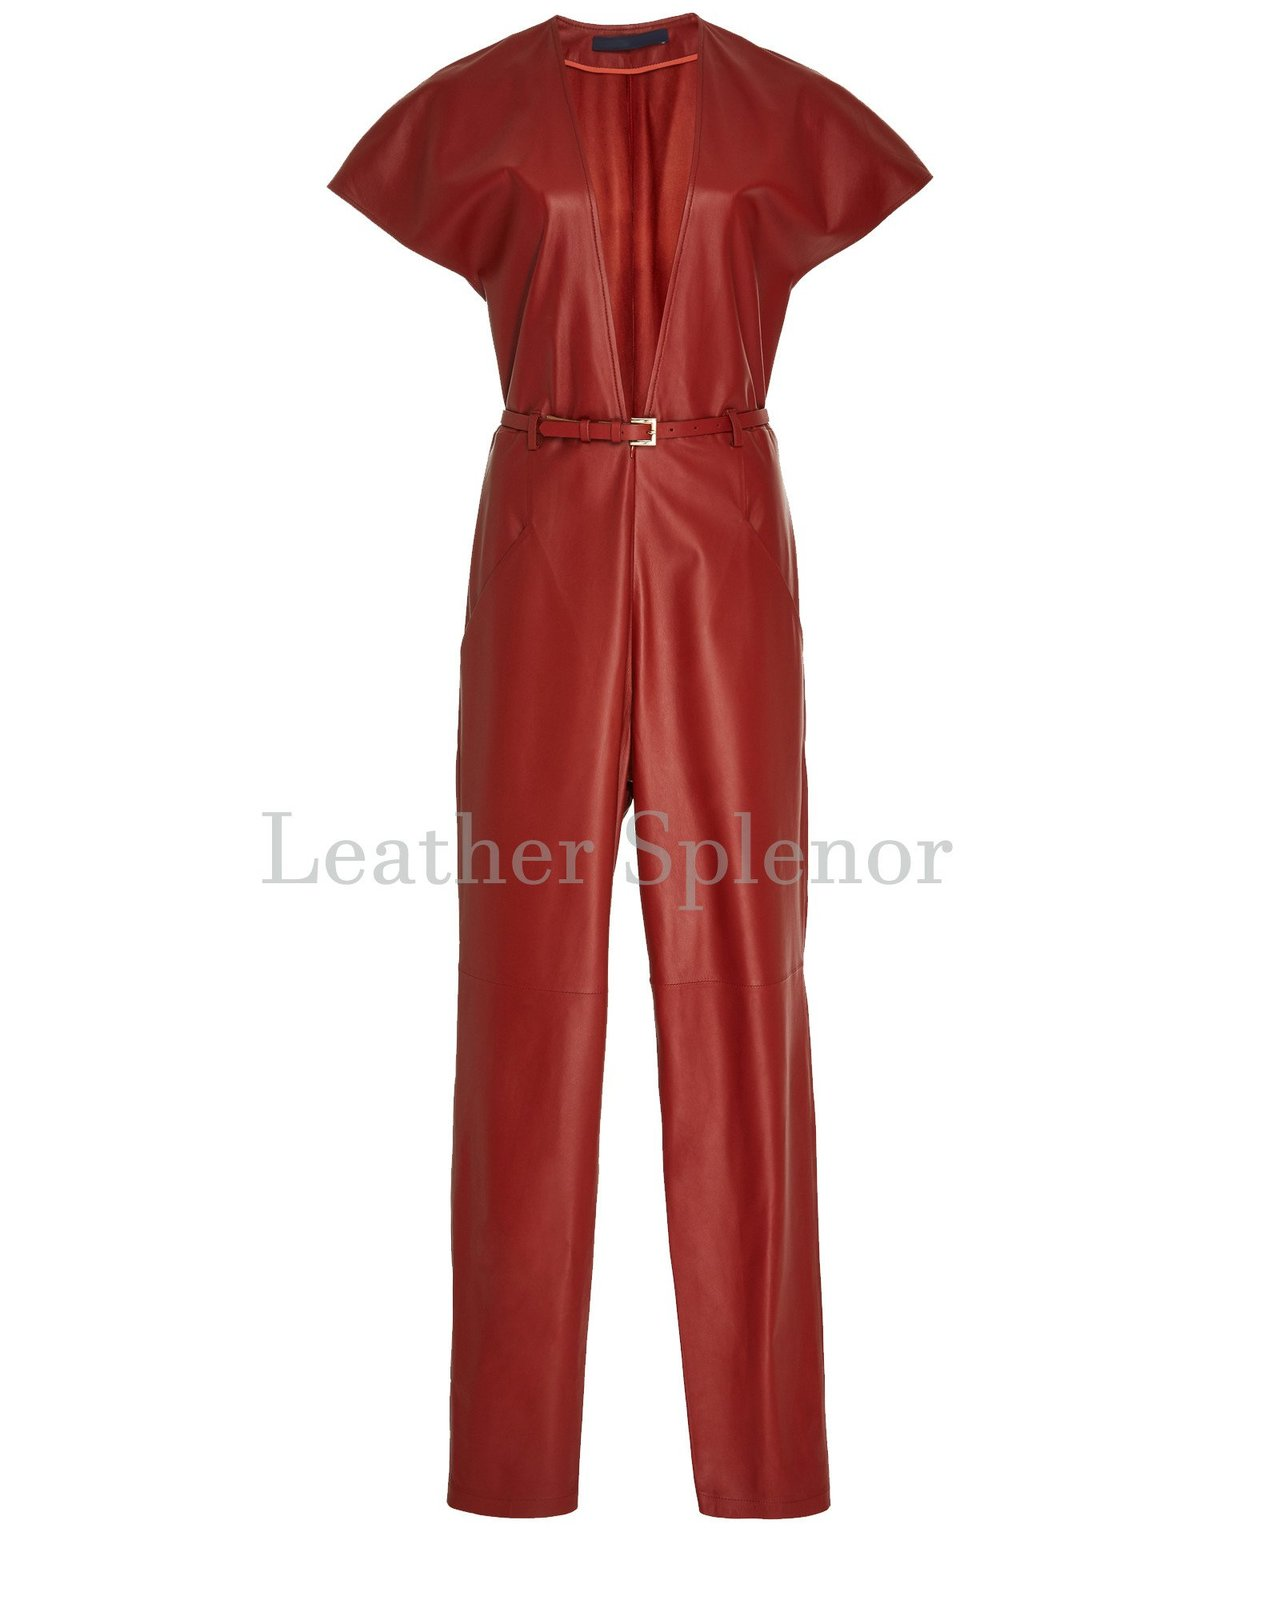 Wide Sleeve Style Women Leather Jumpsuit